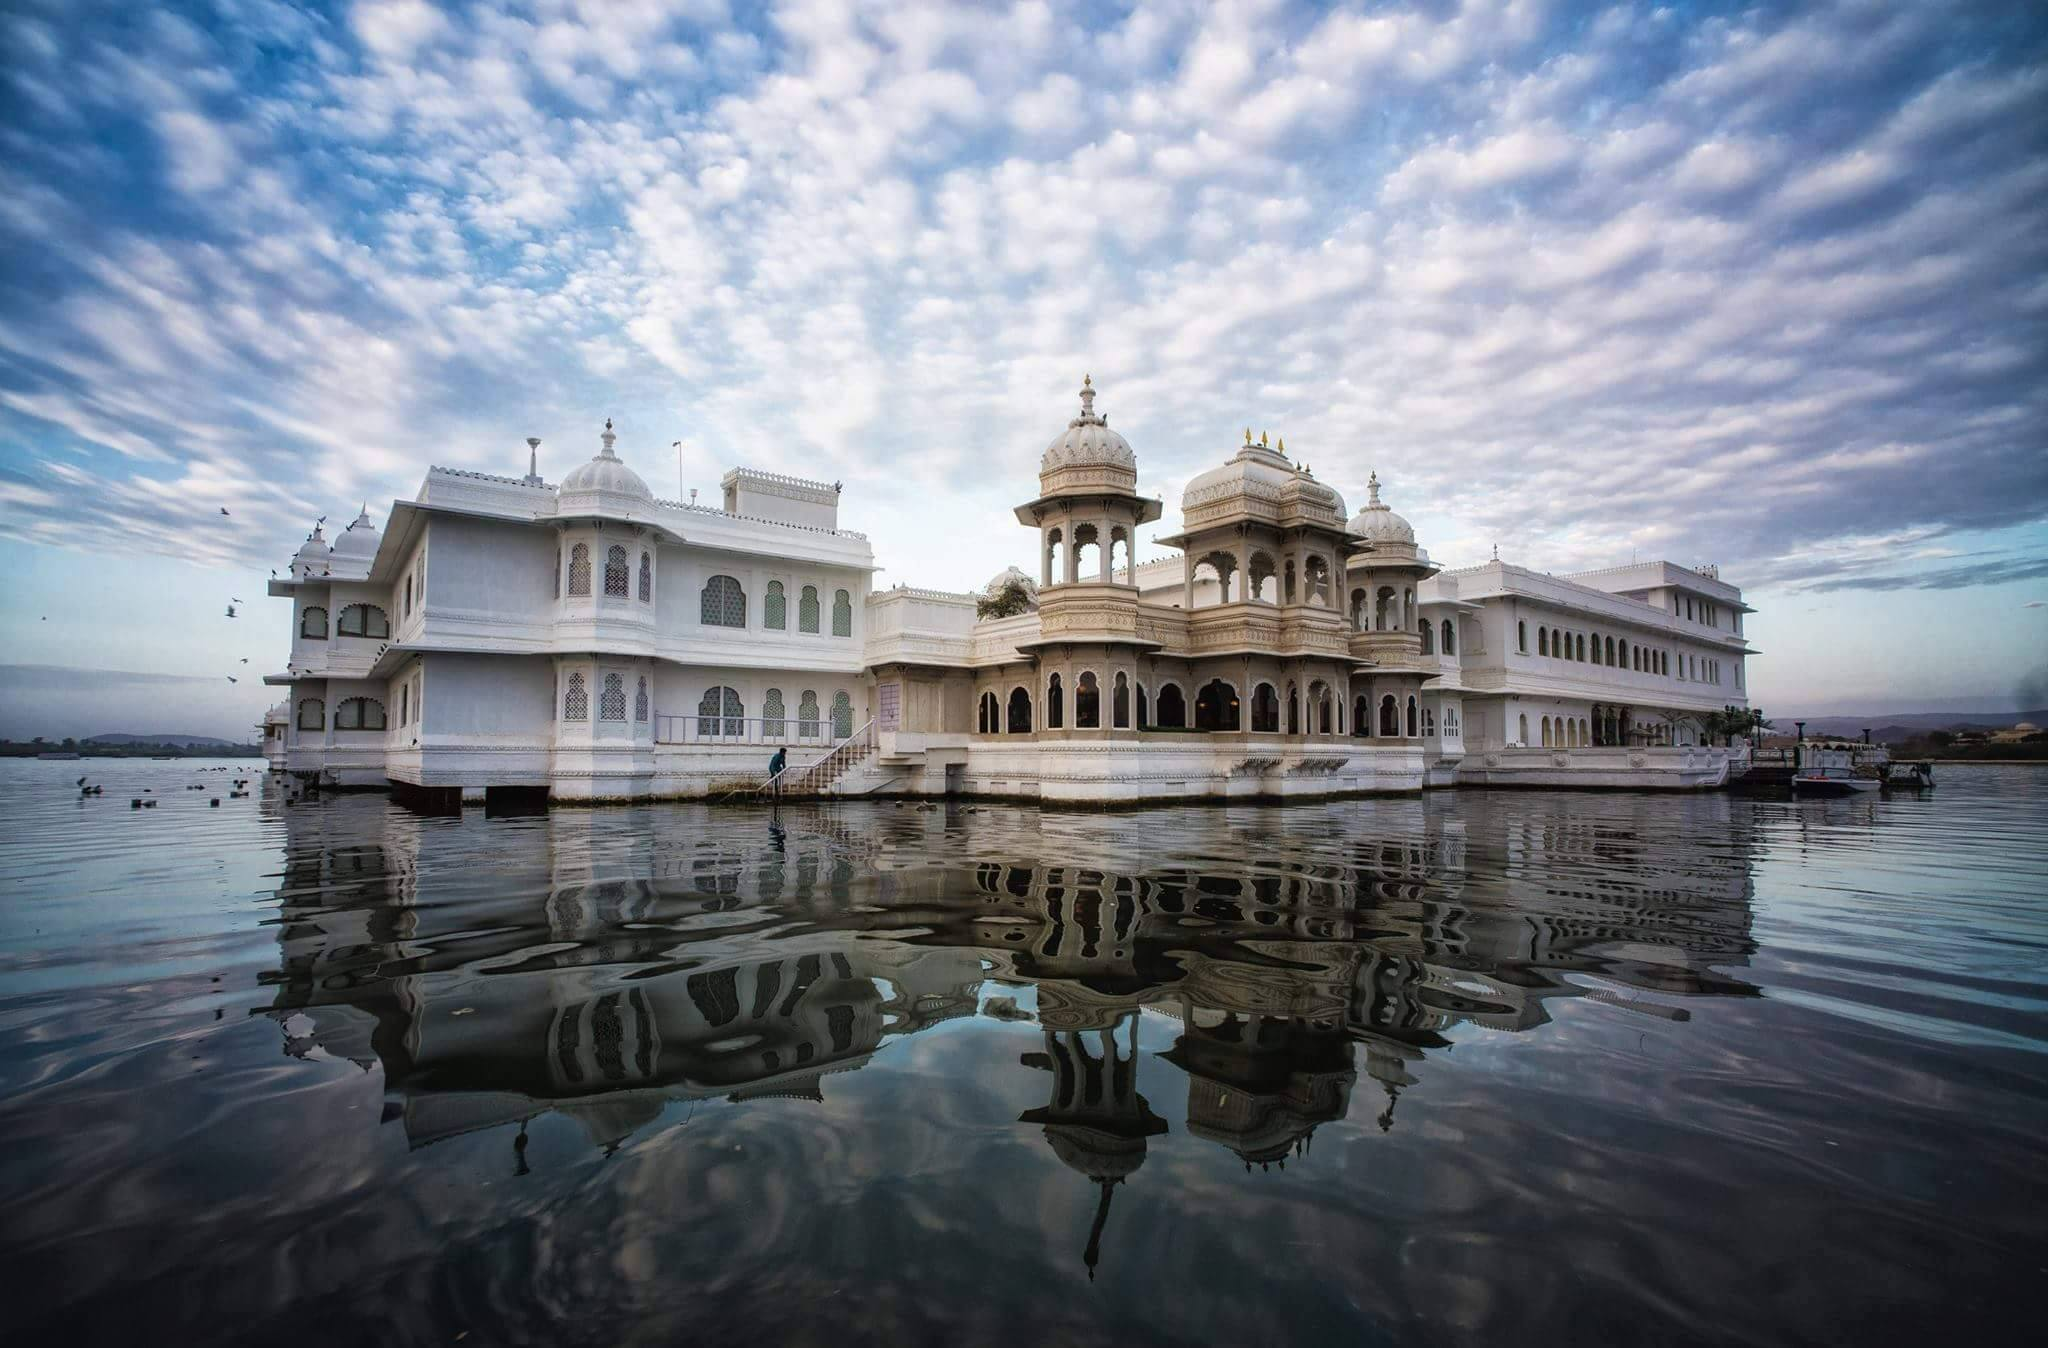 Taj lake palace pictures 36 best Help For Low Income Families images on Pinterest Nursing